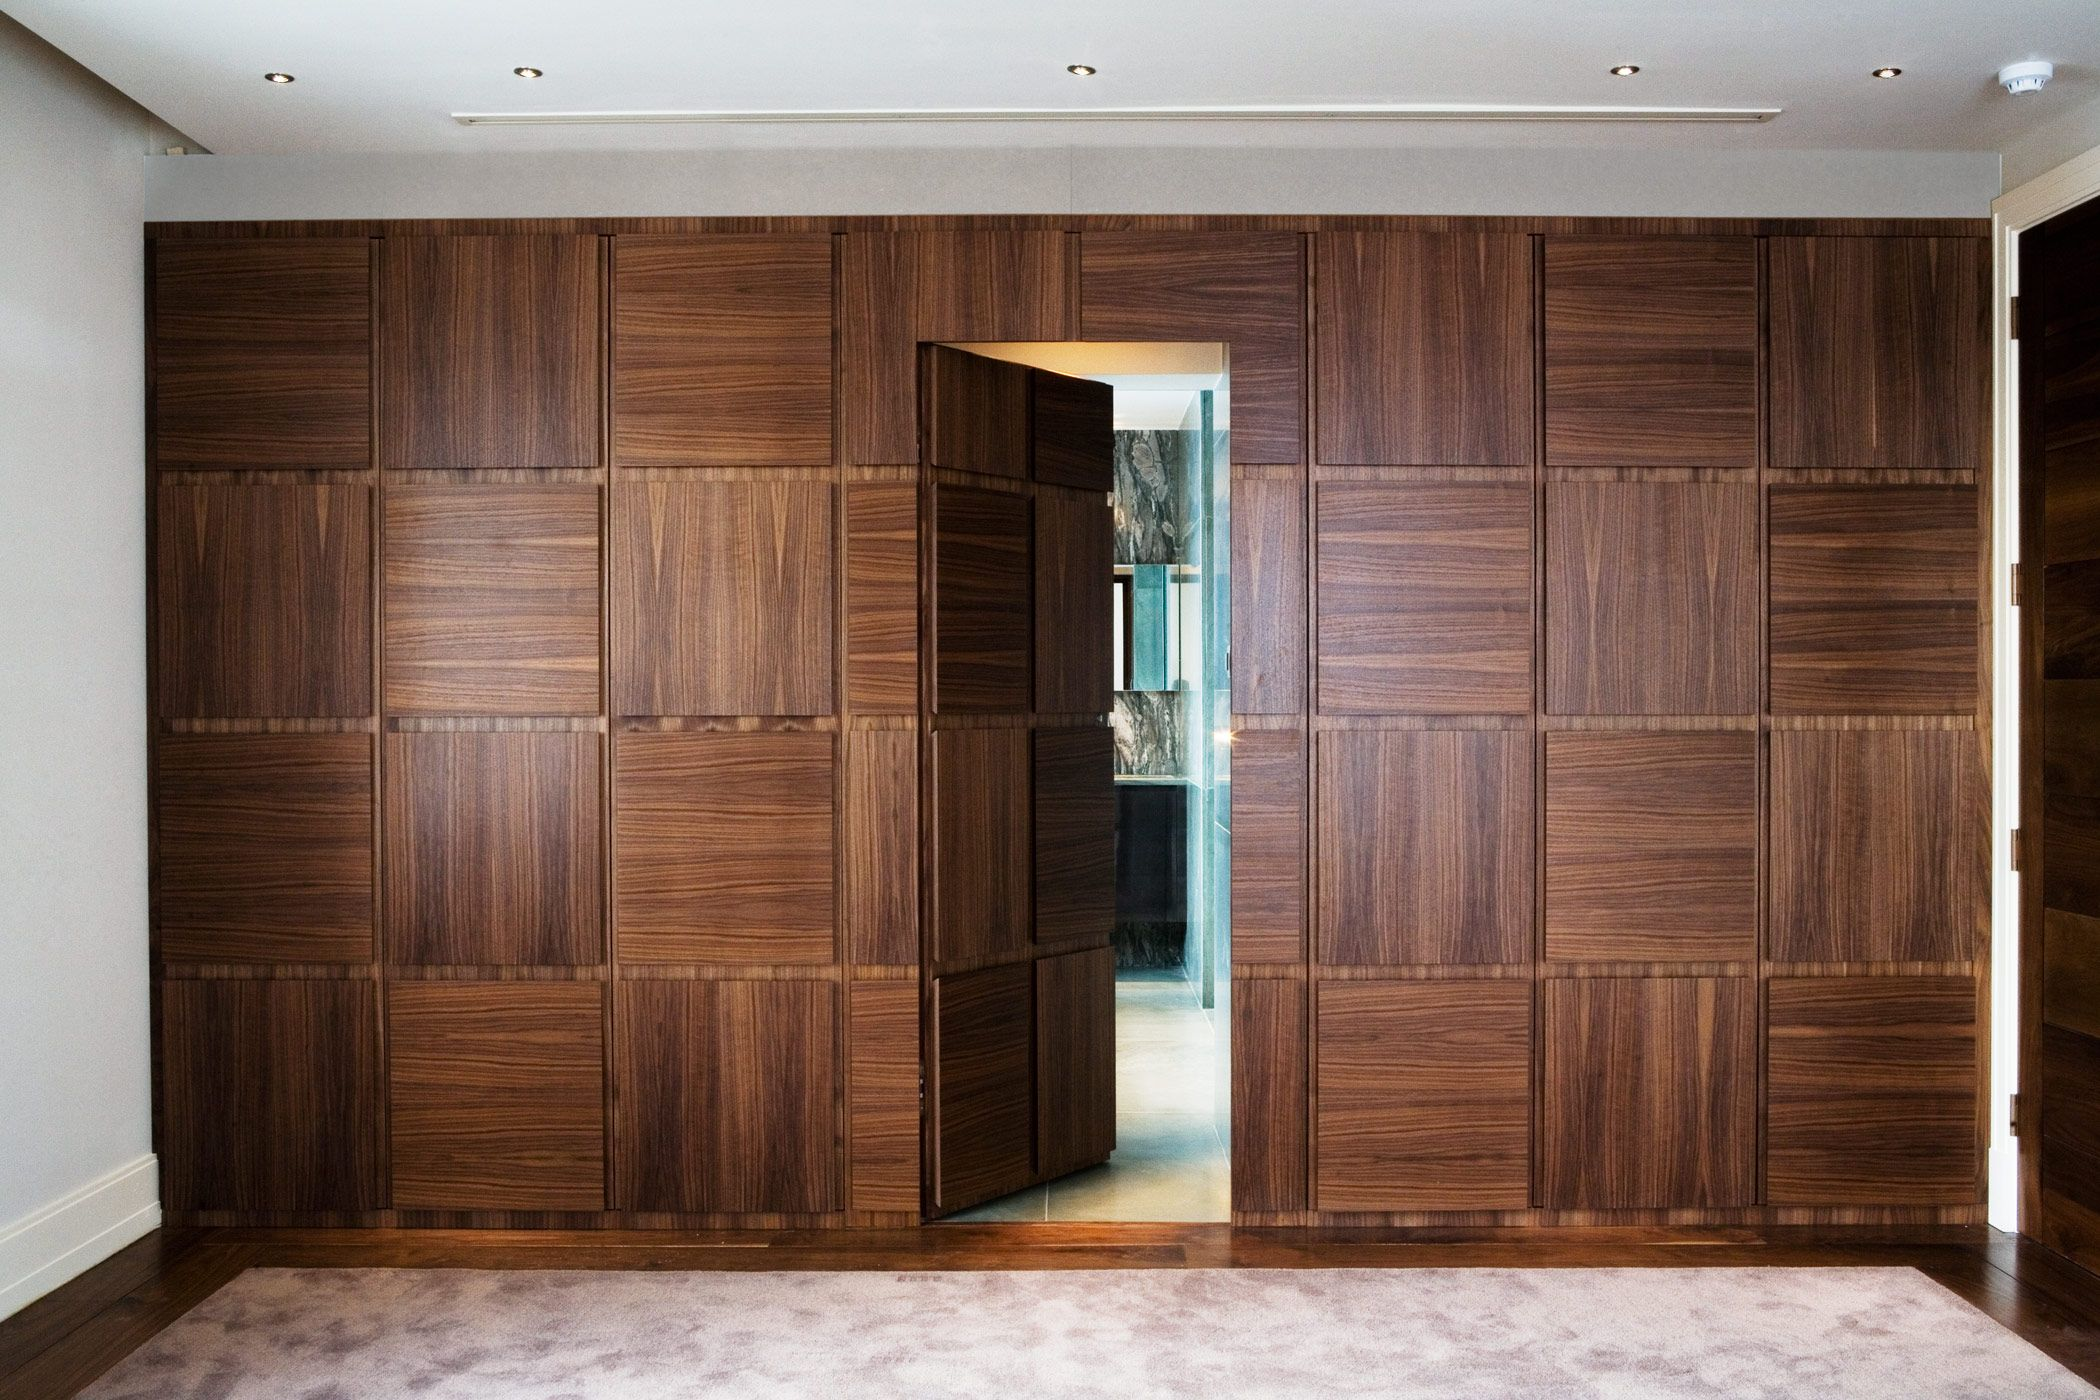 Interior id project 00263 bespoke joinery london uk for Puertas ocultas